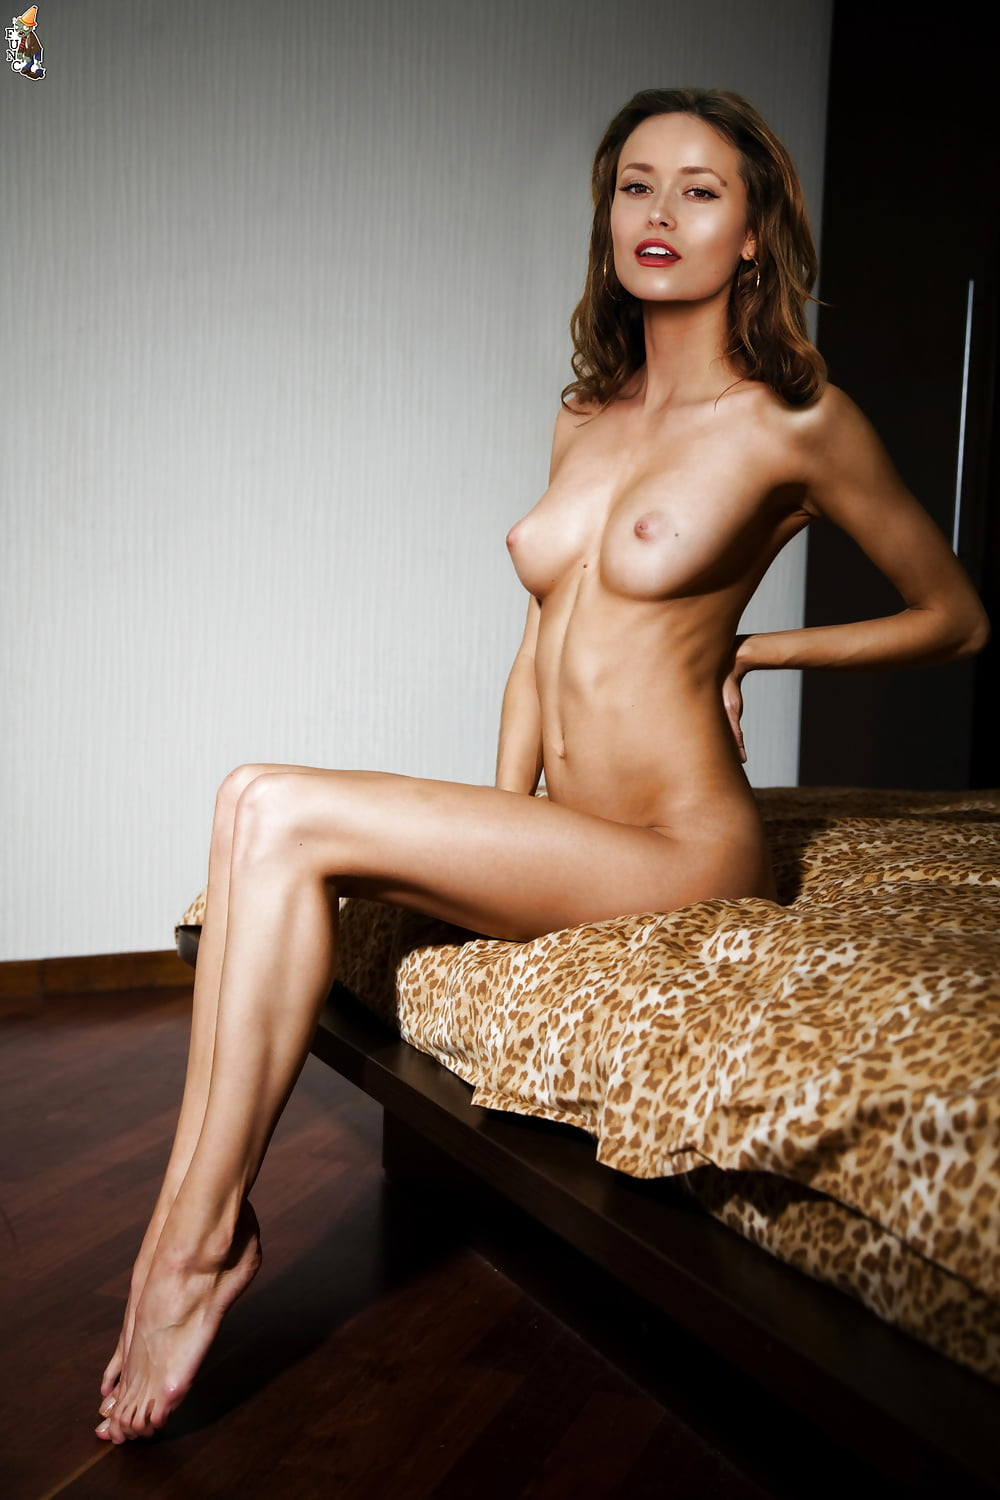 summer-glau-hot-nude